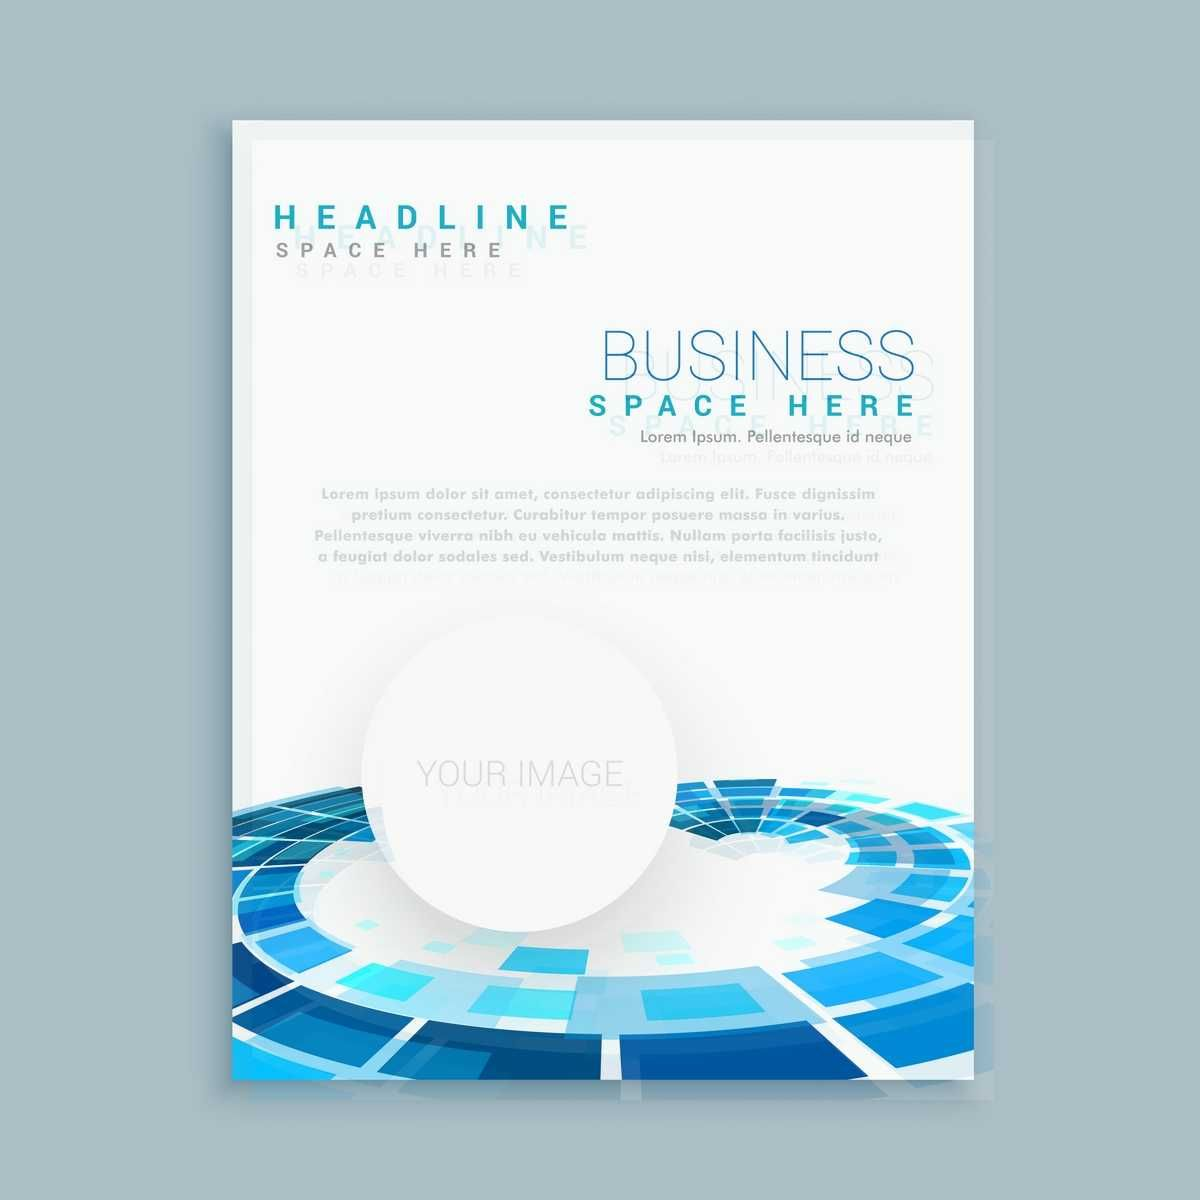 Round Shapes Brochure Template - FREE | Brochures | Pinterest